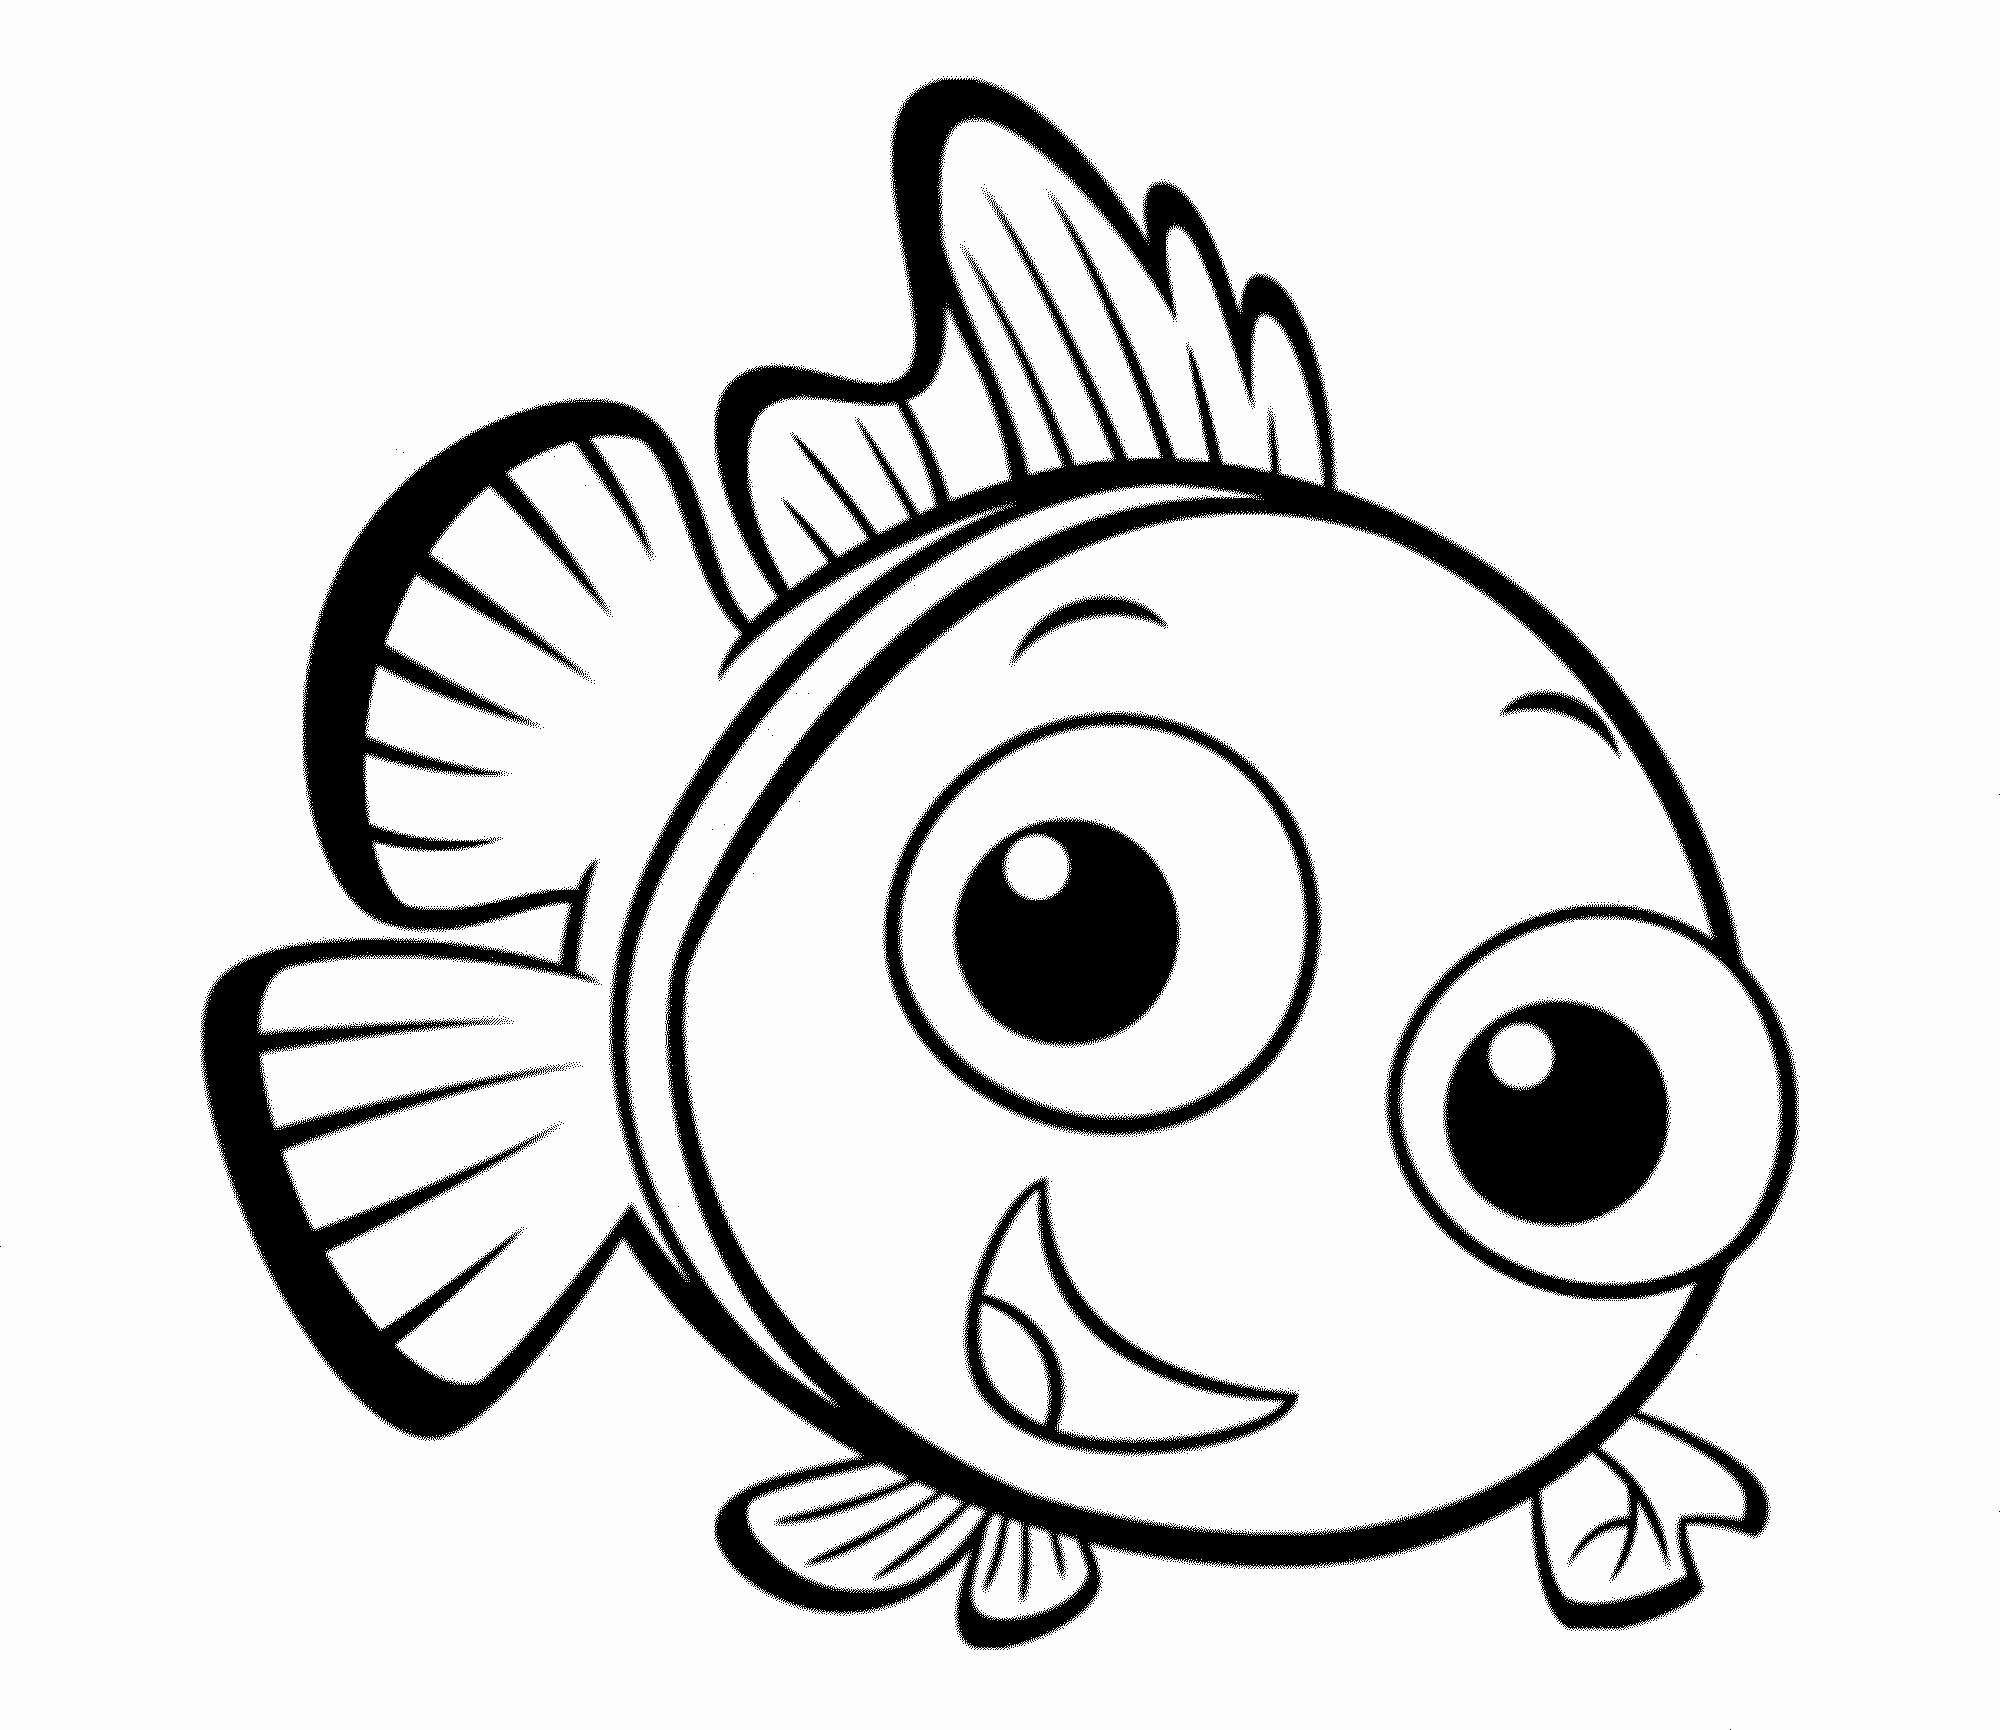 images of fish for colouring bee coloring pages for kids preschool and kindergarten of fish for images colouring